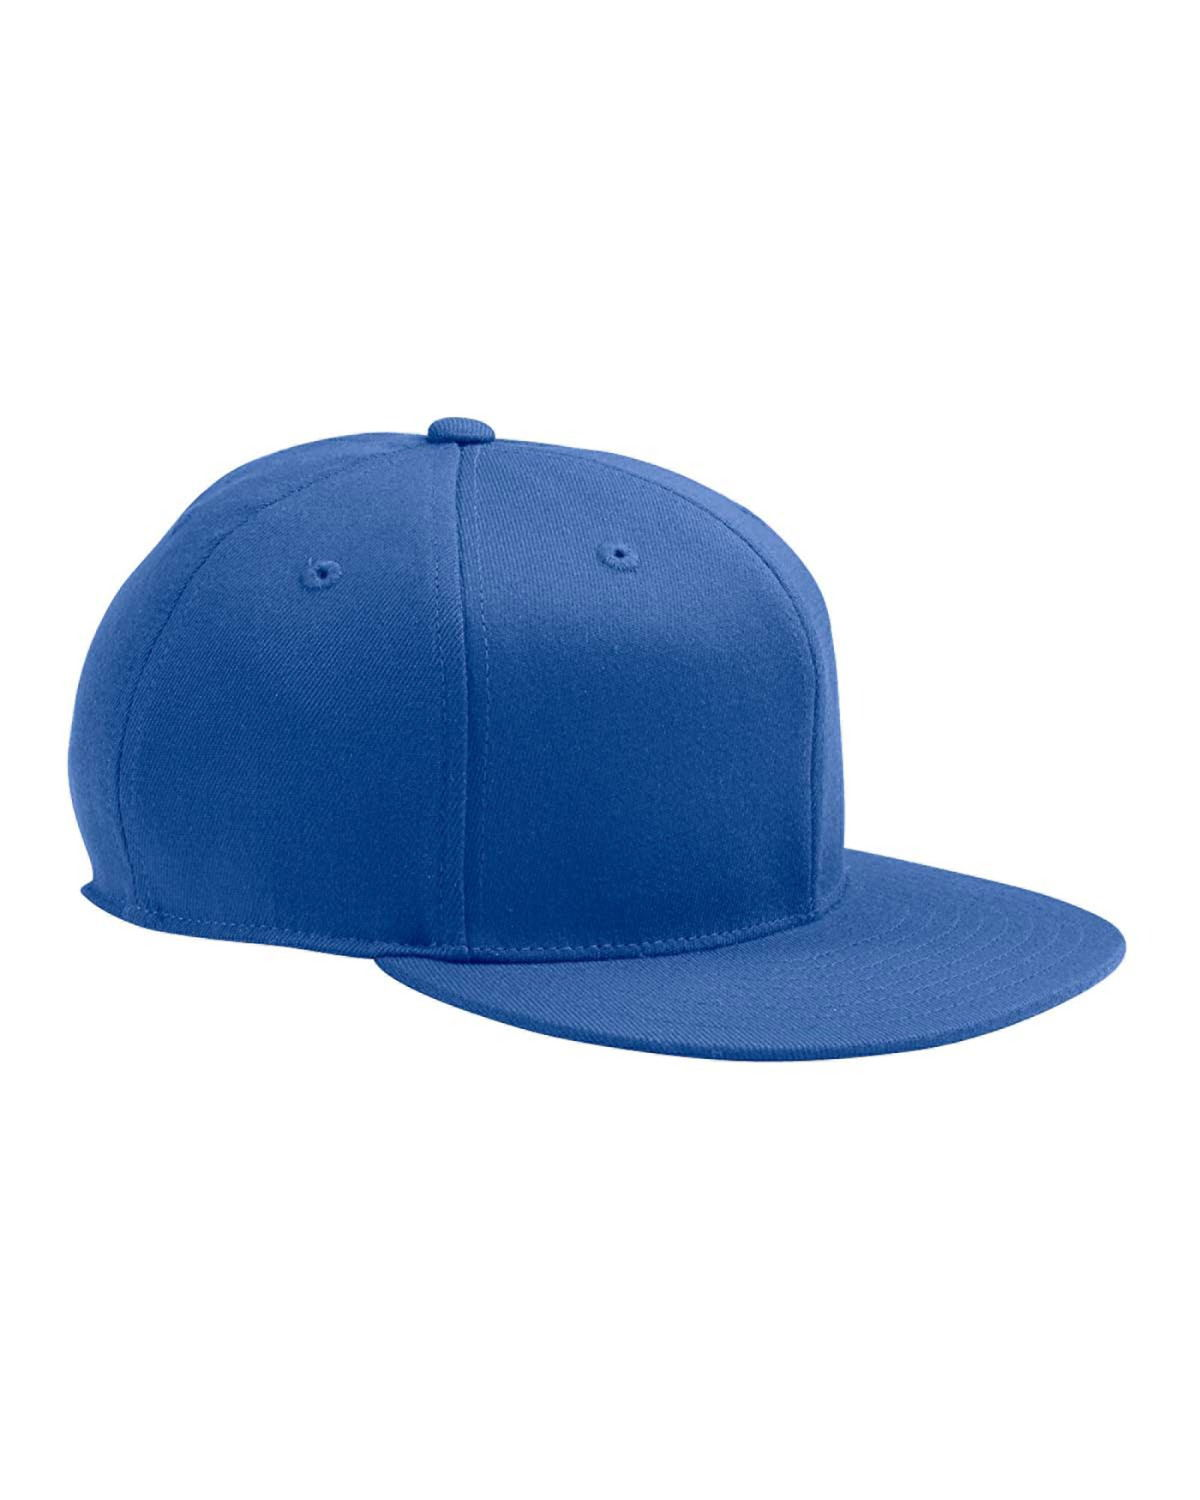 Flexfit 6210 - Premium 210 Fitted Cap